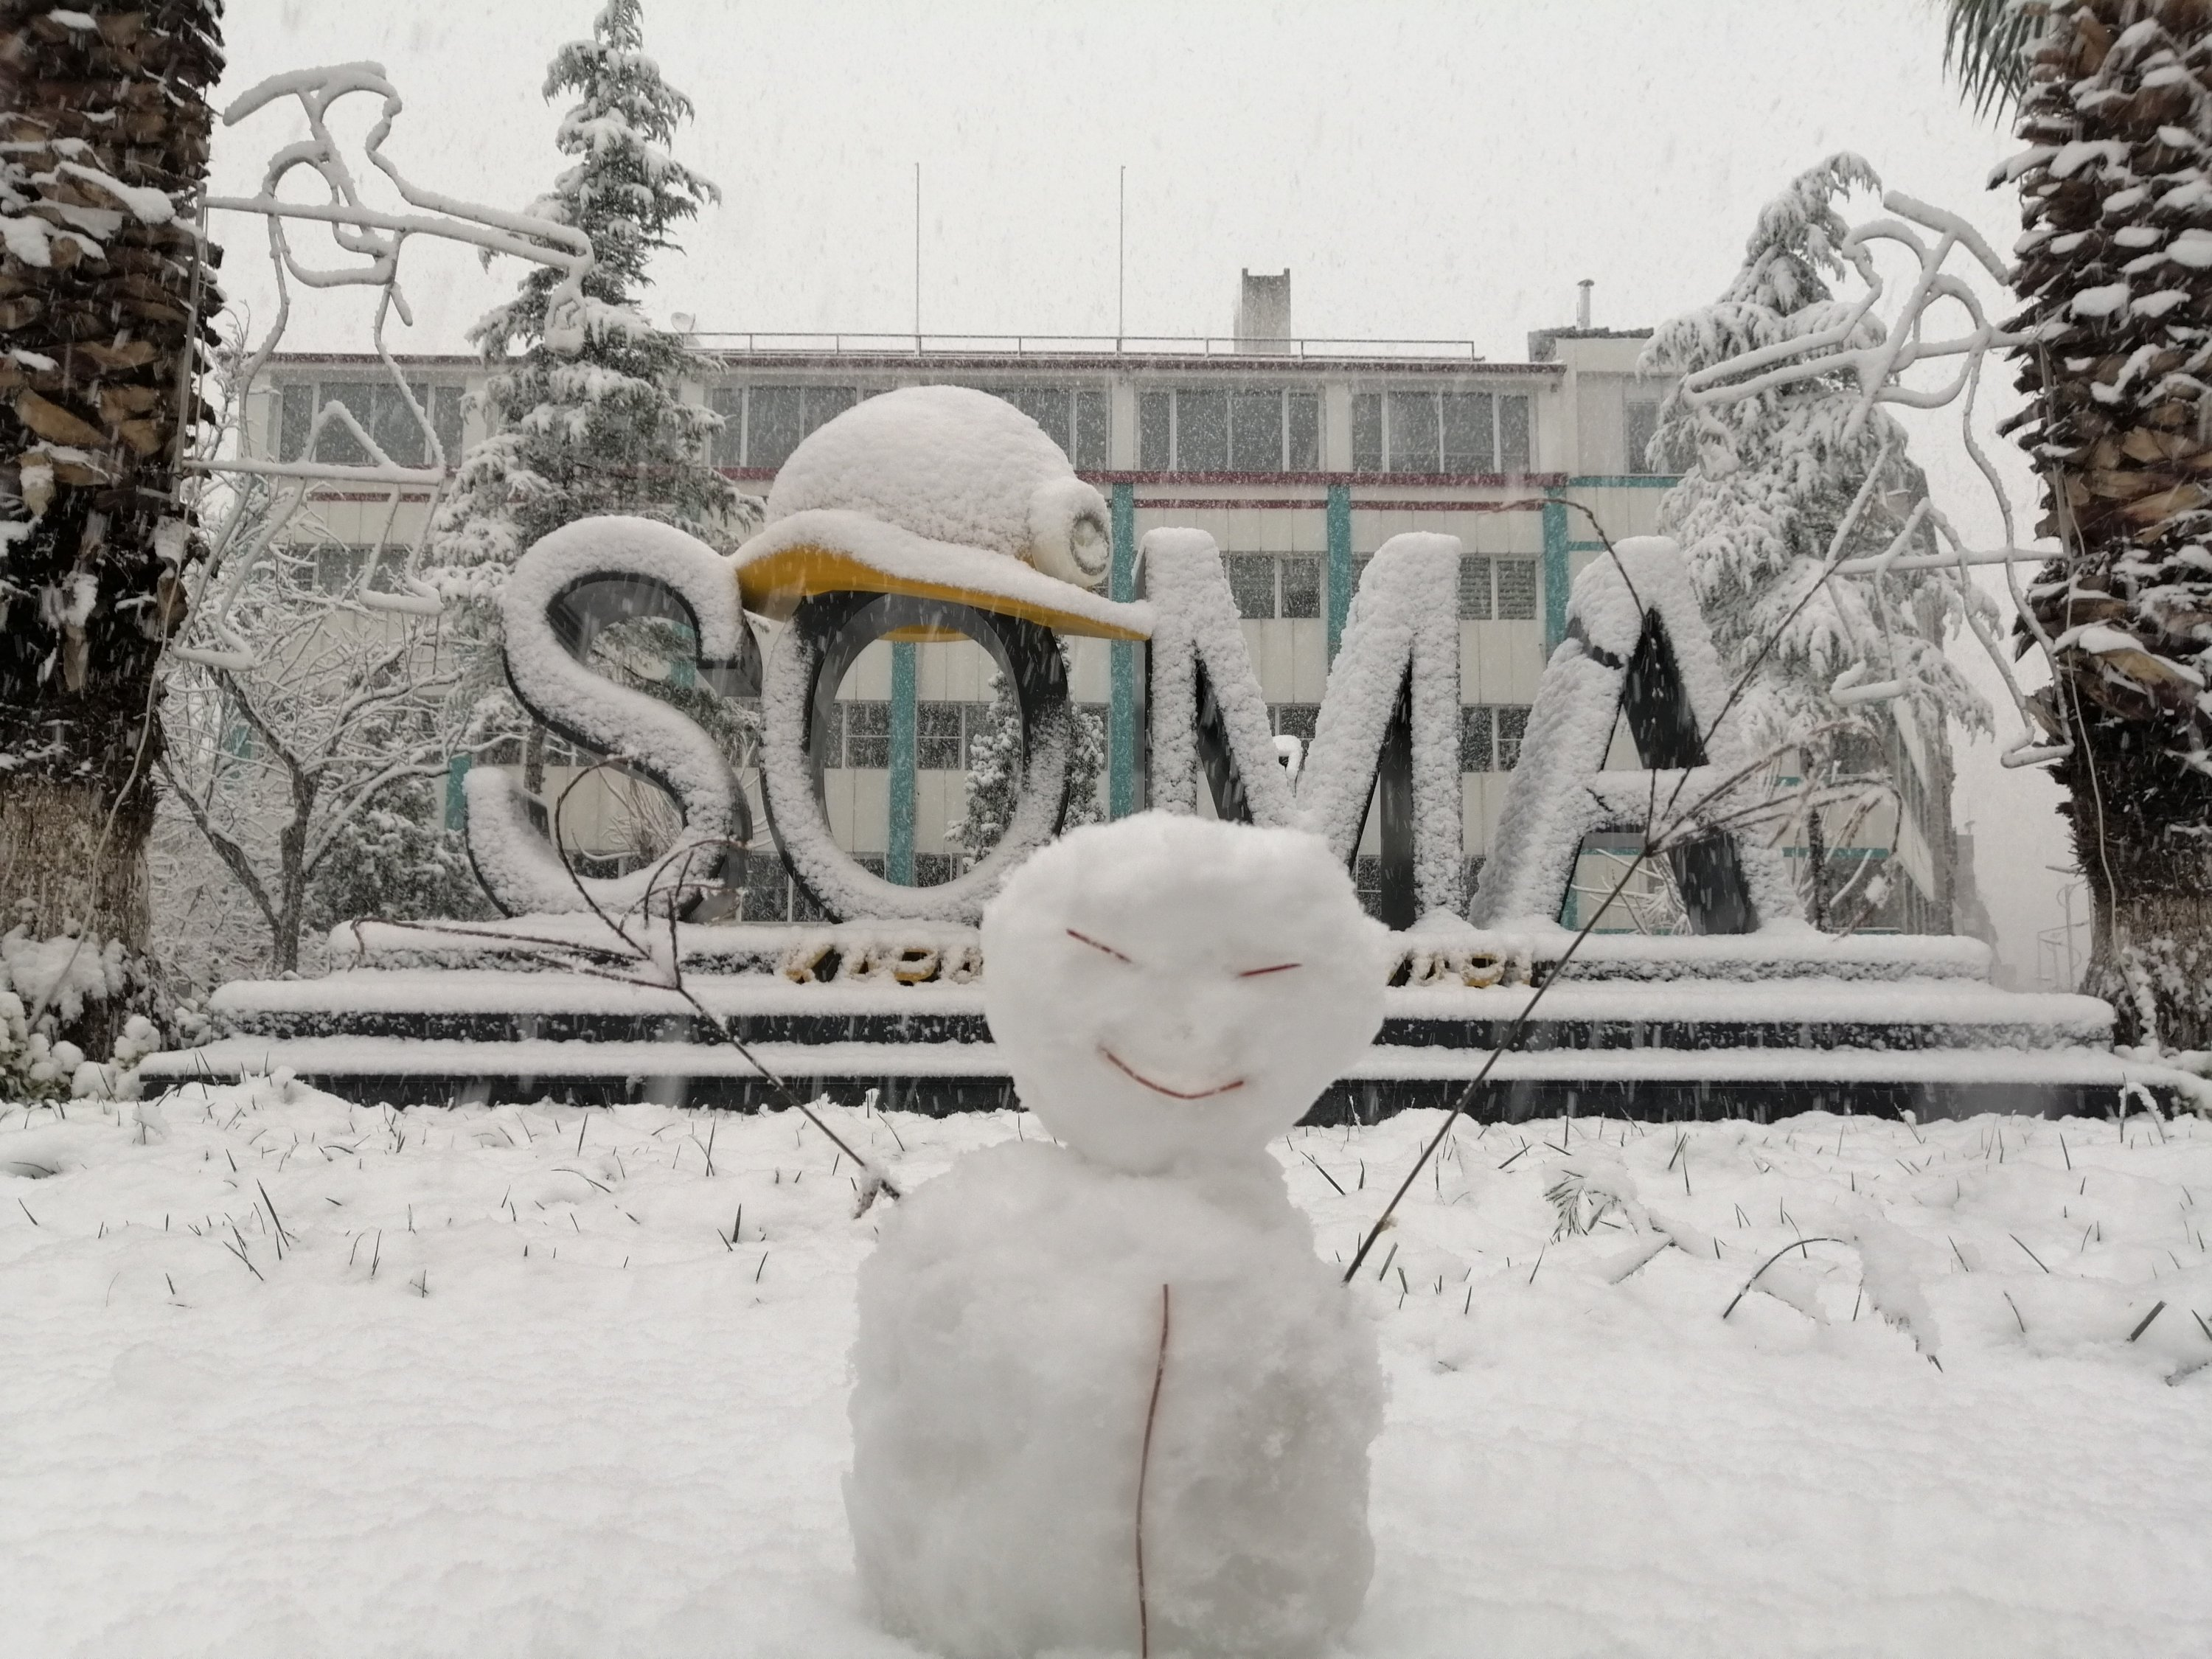 A snowman is seen in front of a landmark in the town Soma, in Manisa, western Turkey, on Jan. 16, 2021. (IHA Photo)